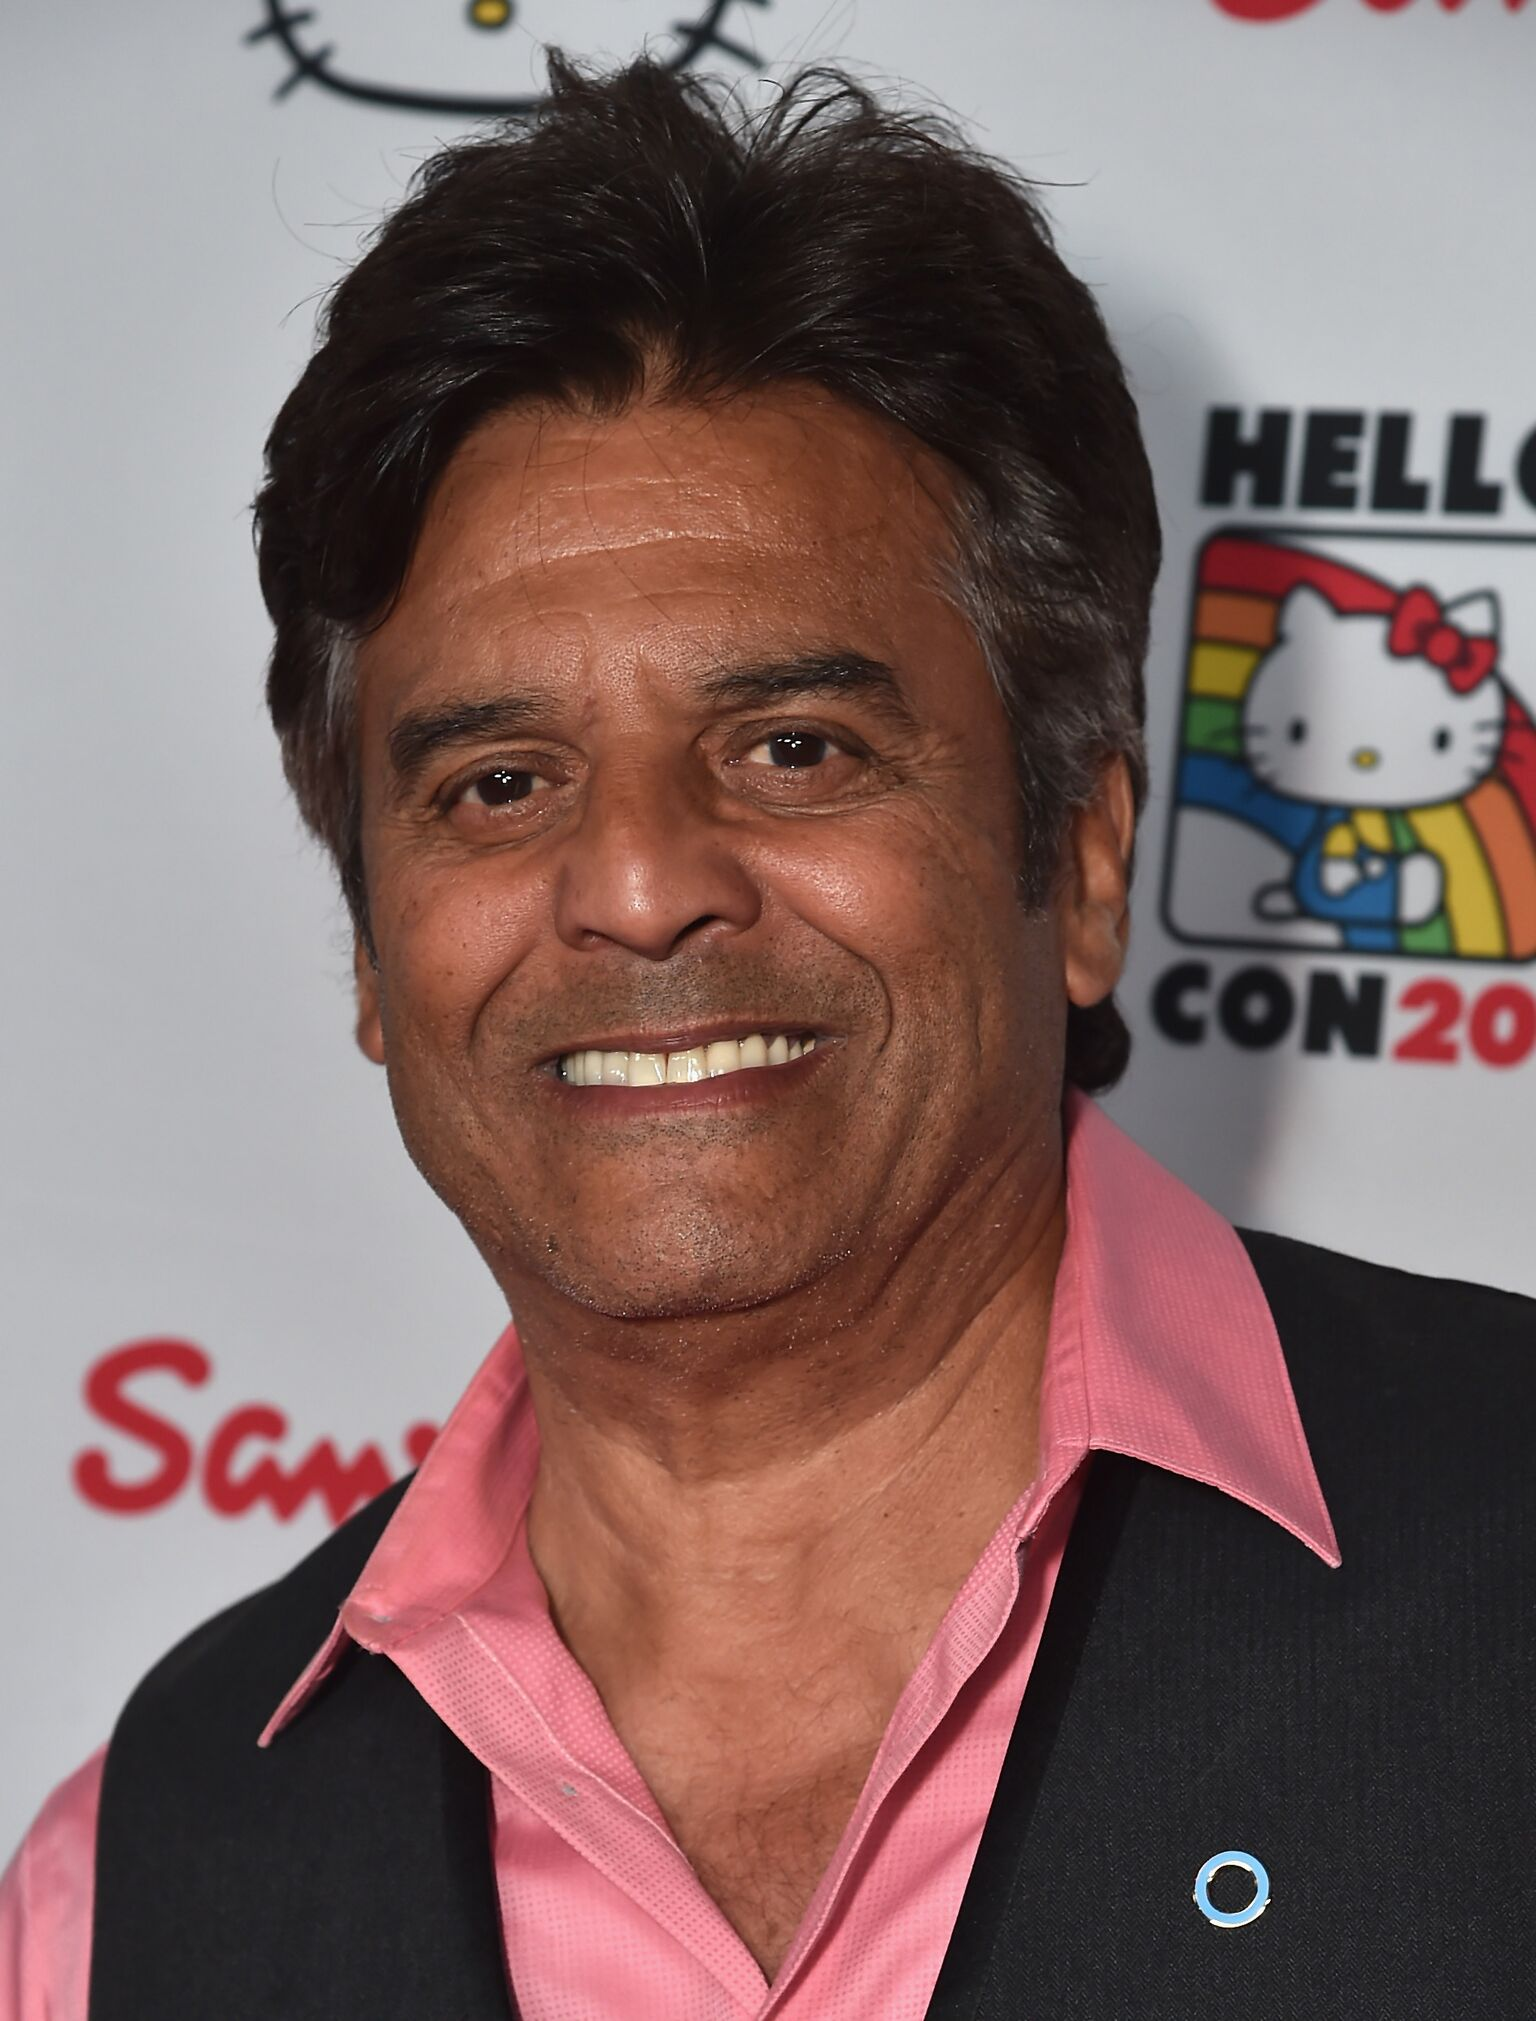 Actor Erik Estrada arrives to Hello Kitty Con 2014 Opening Night Party Co-hosted by Target  | Getty Images